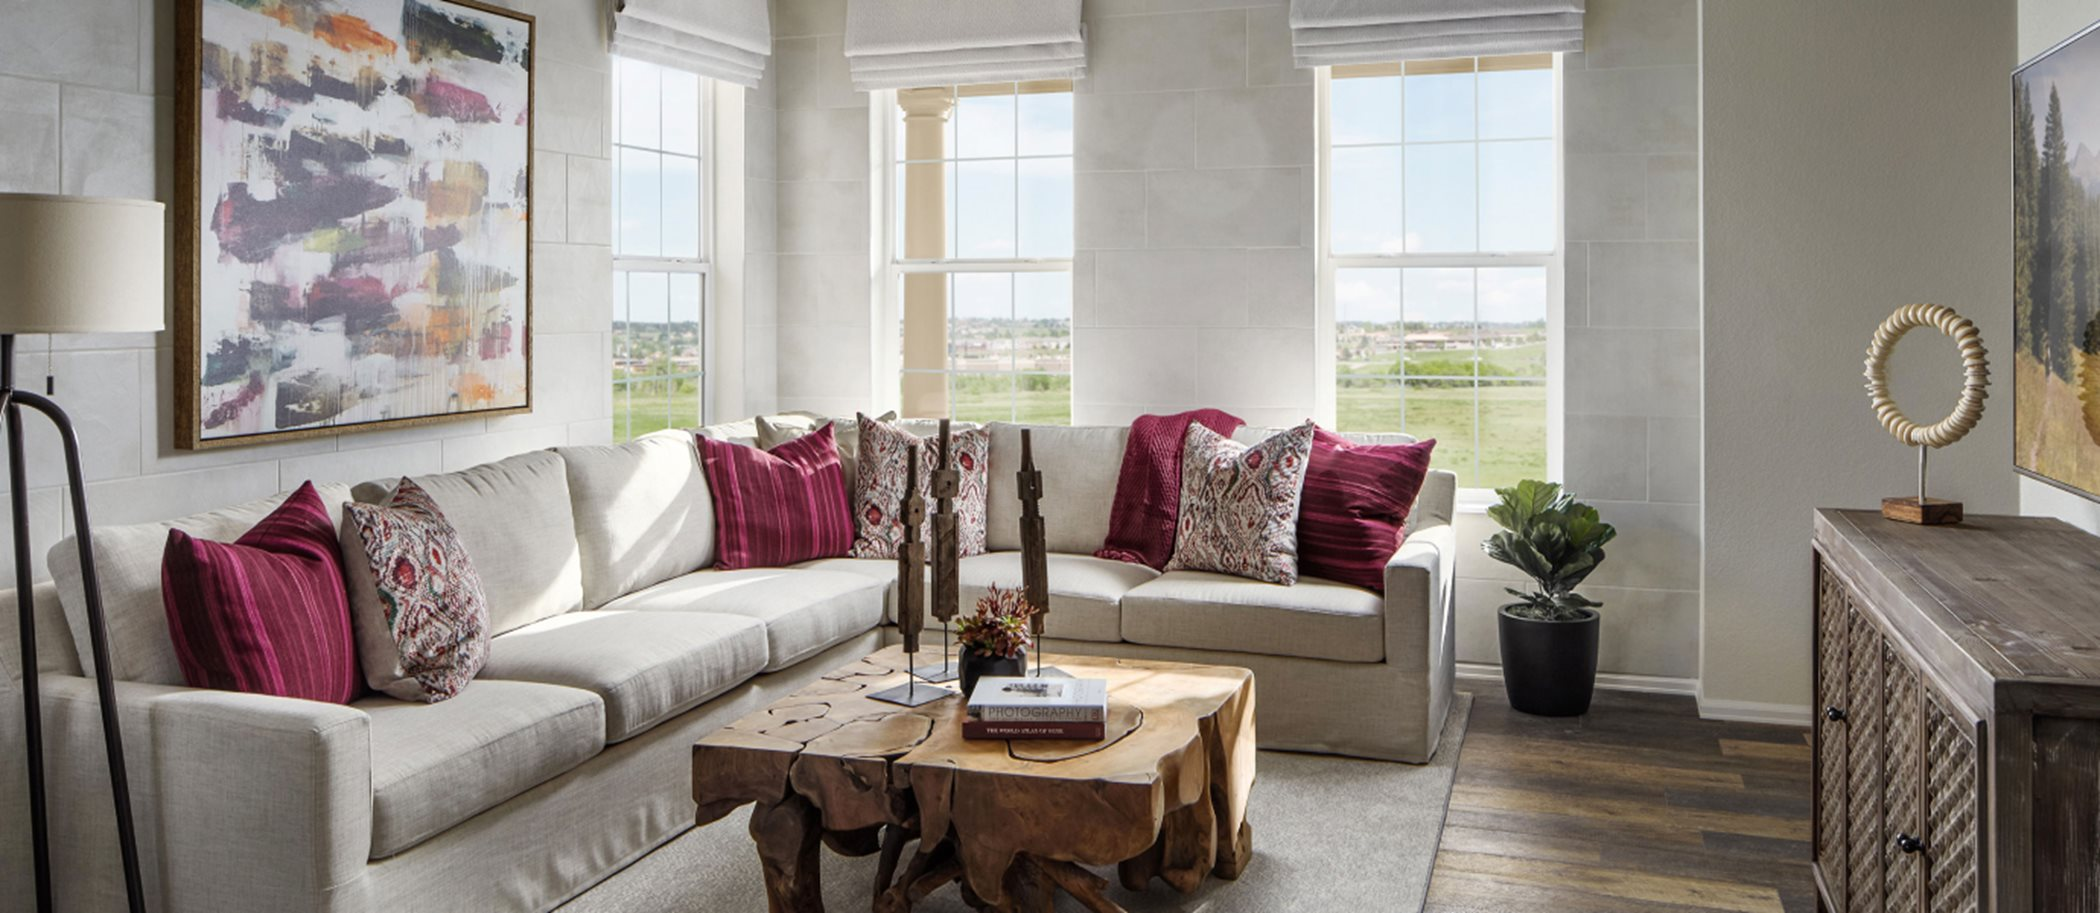 Palisade Park Paired Homes Lucent- Left Living